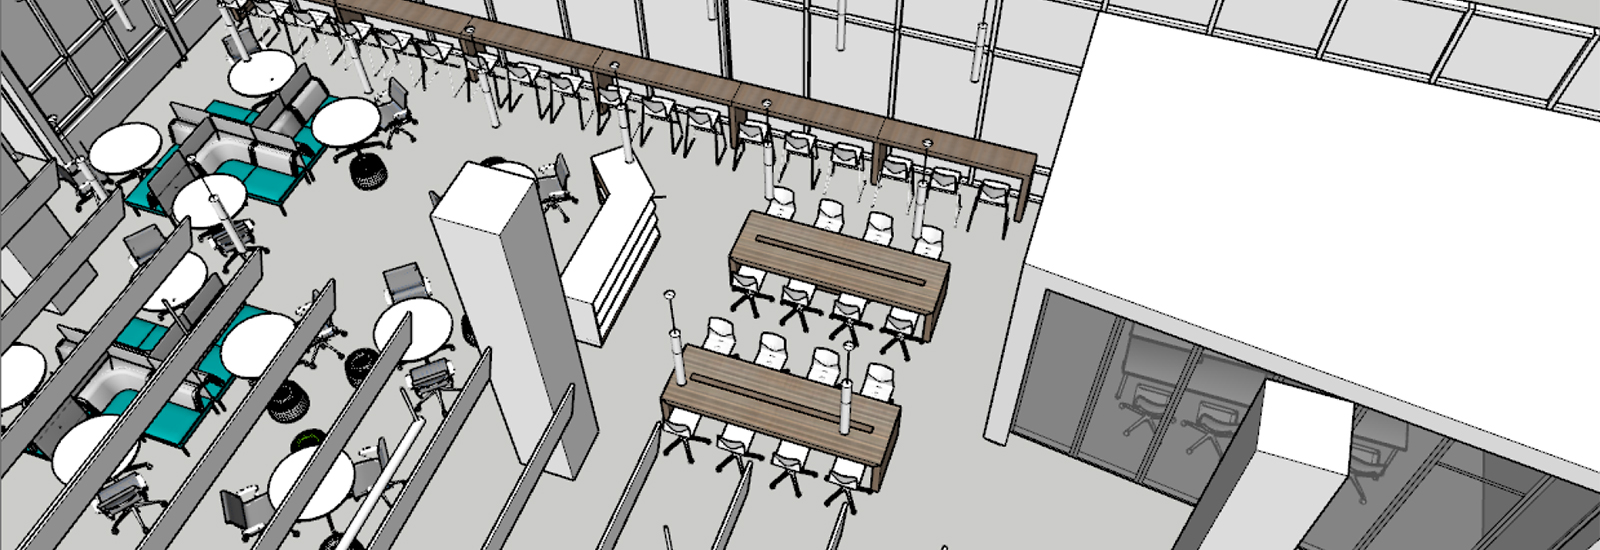 Learning Commons Rendering